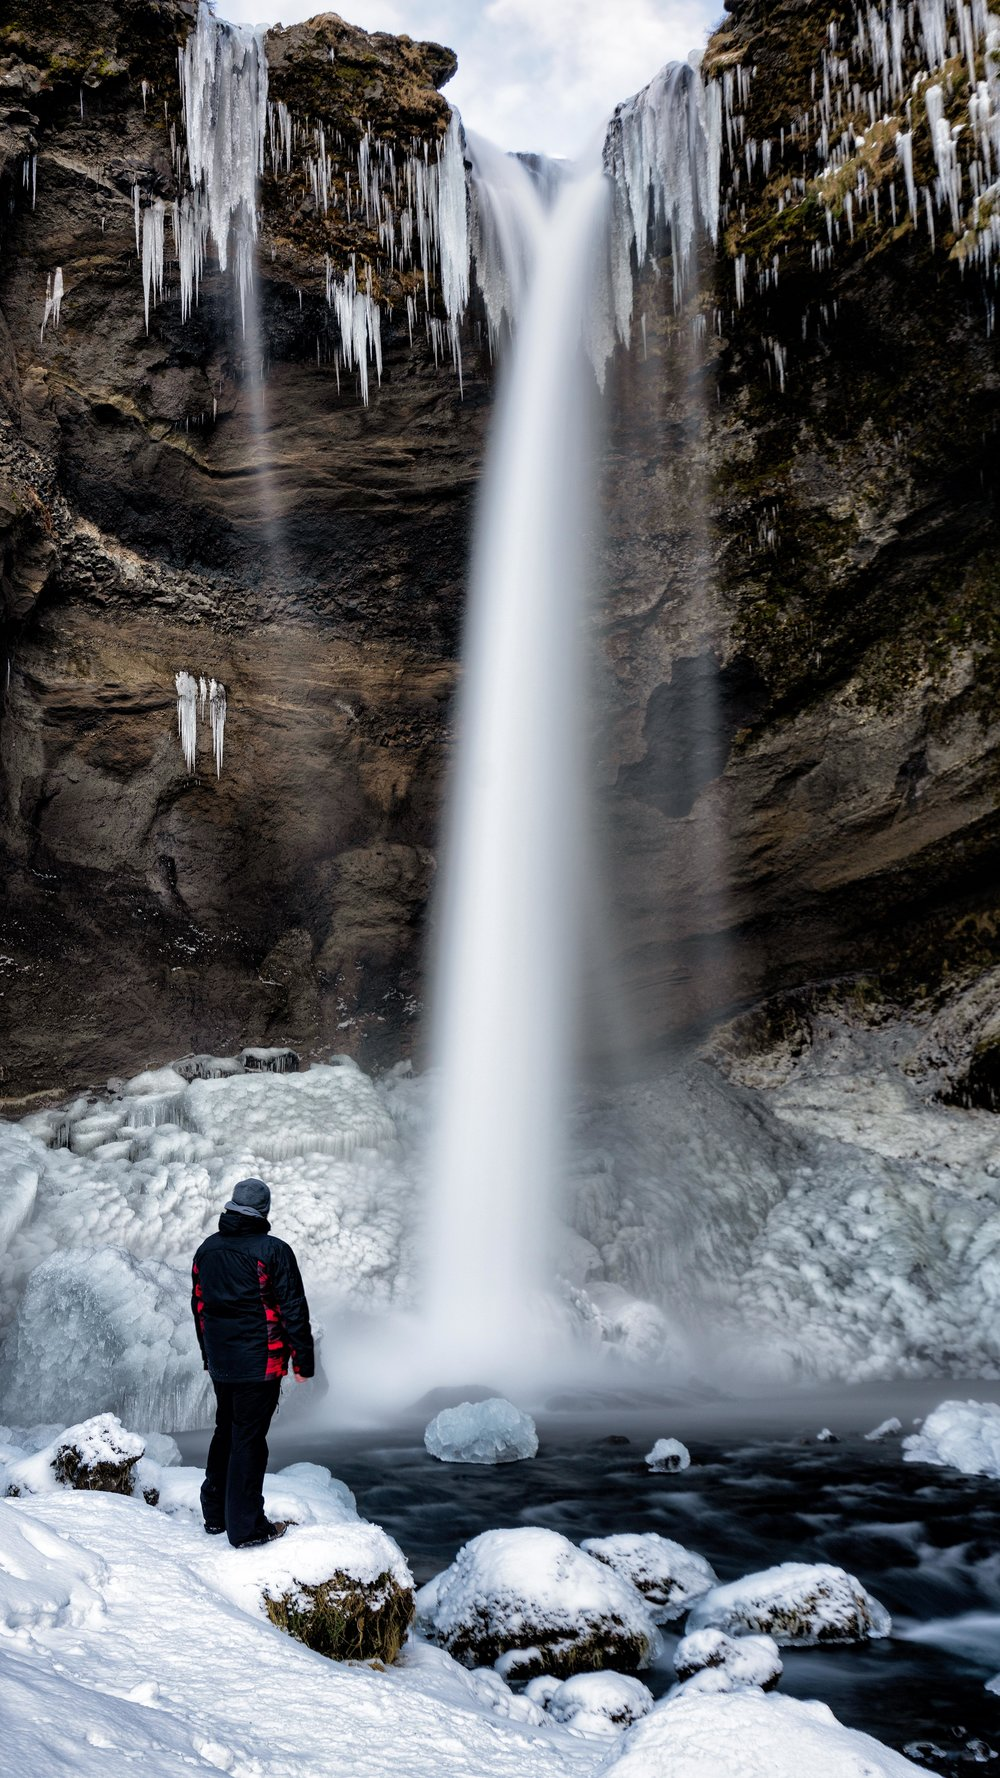 Iceland. snow. travel. adventure. photography. trip. epic landscape. snow. cold. freezing. sunrise. waterfall fun times.jpg